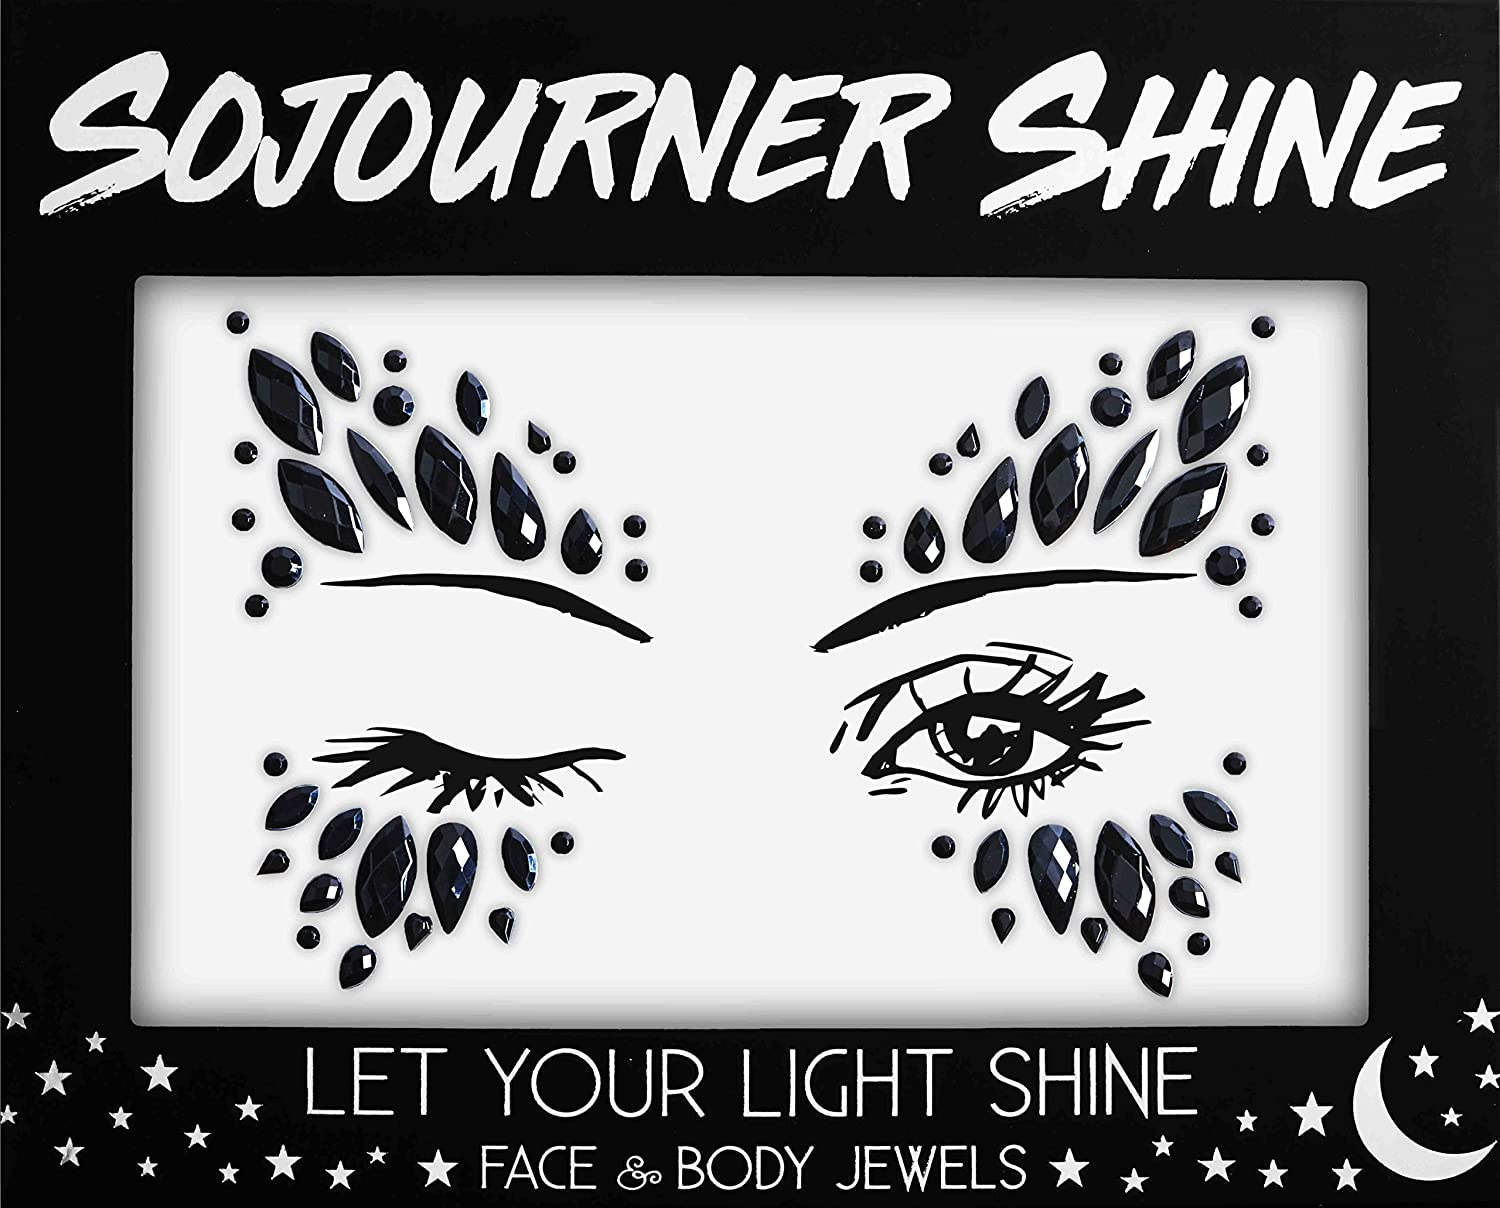 Face Jewels Glitter Gems Rhinestones – Eye Body Jewels Gems | Rhinestone Stickers | Body Glitter Festival Rave & Party Accessories by SoJourner (Black Beauty) SoJourner Bags